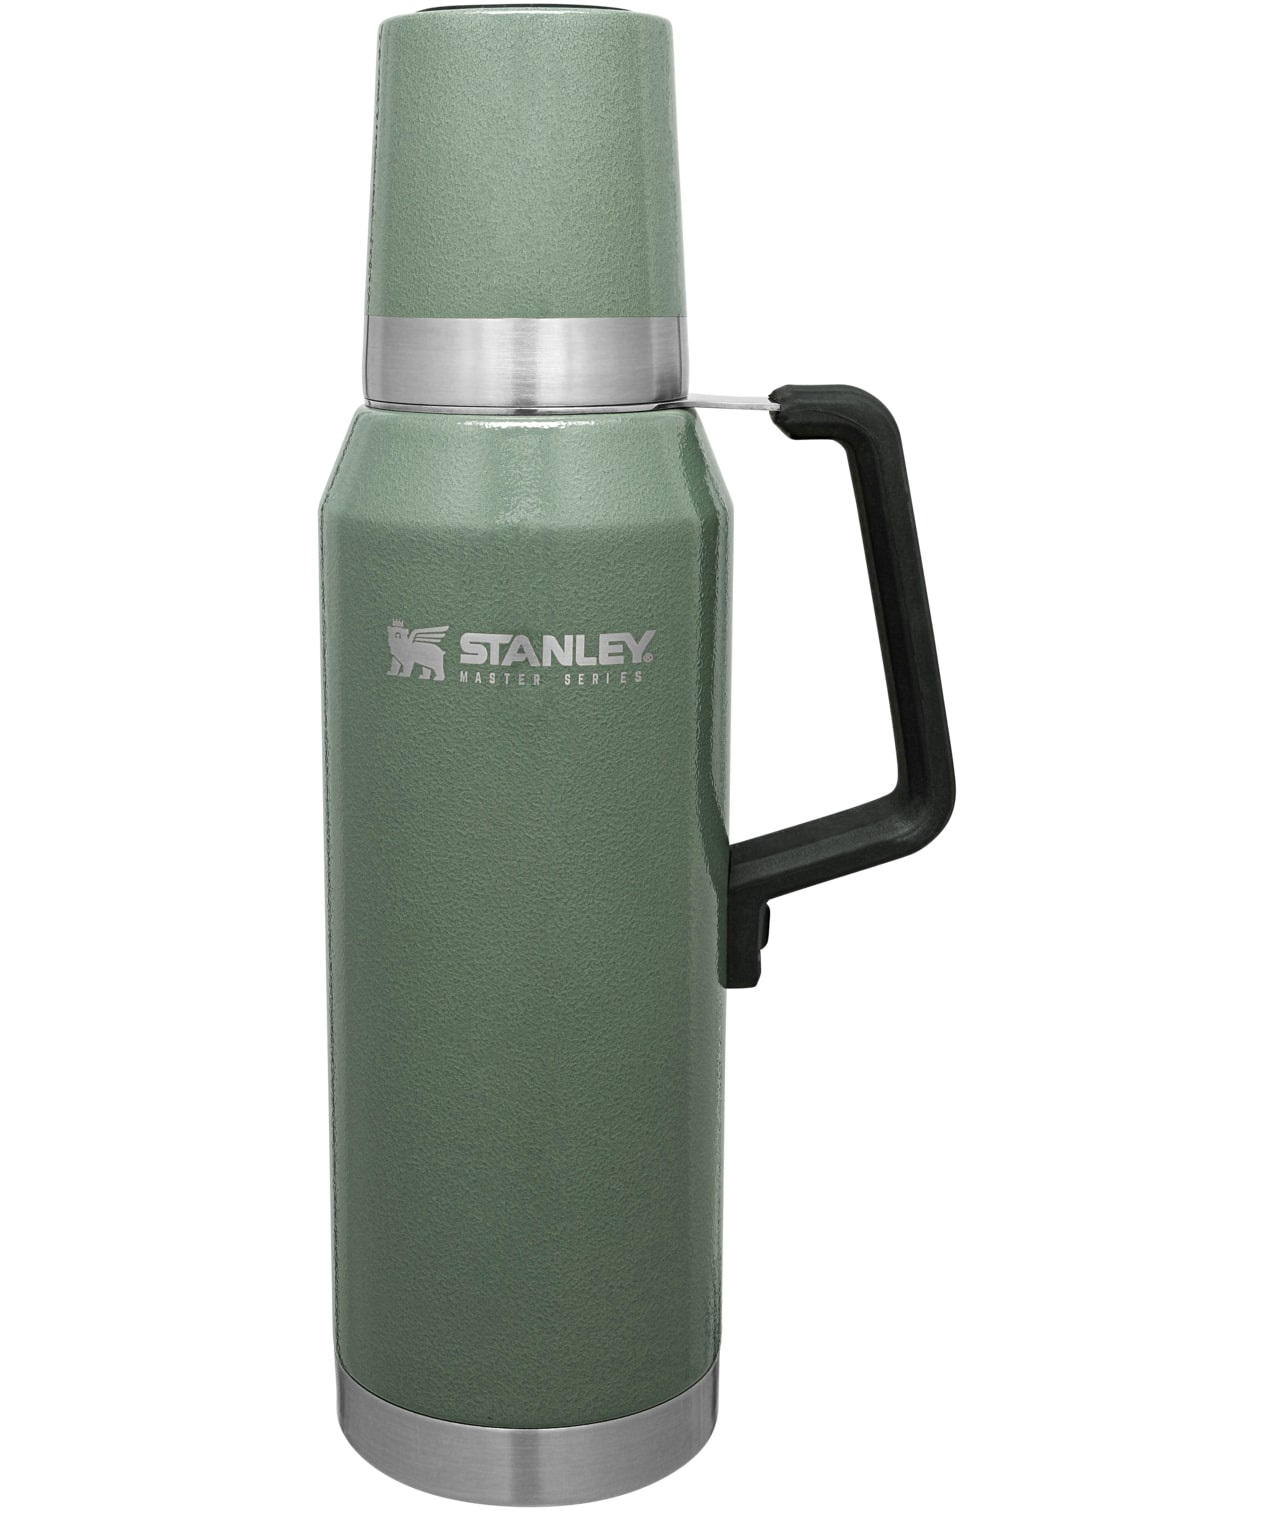 Stanley Master Unbreakable Thermal Bottle 1.4QT | 1.3L – Green